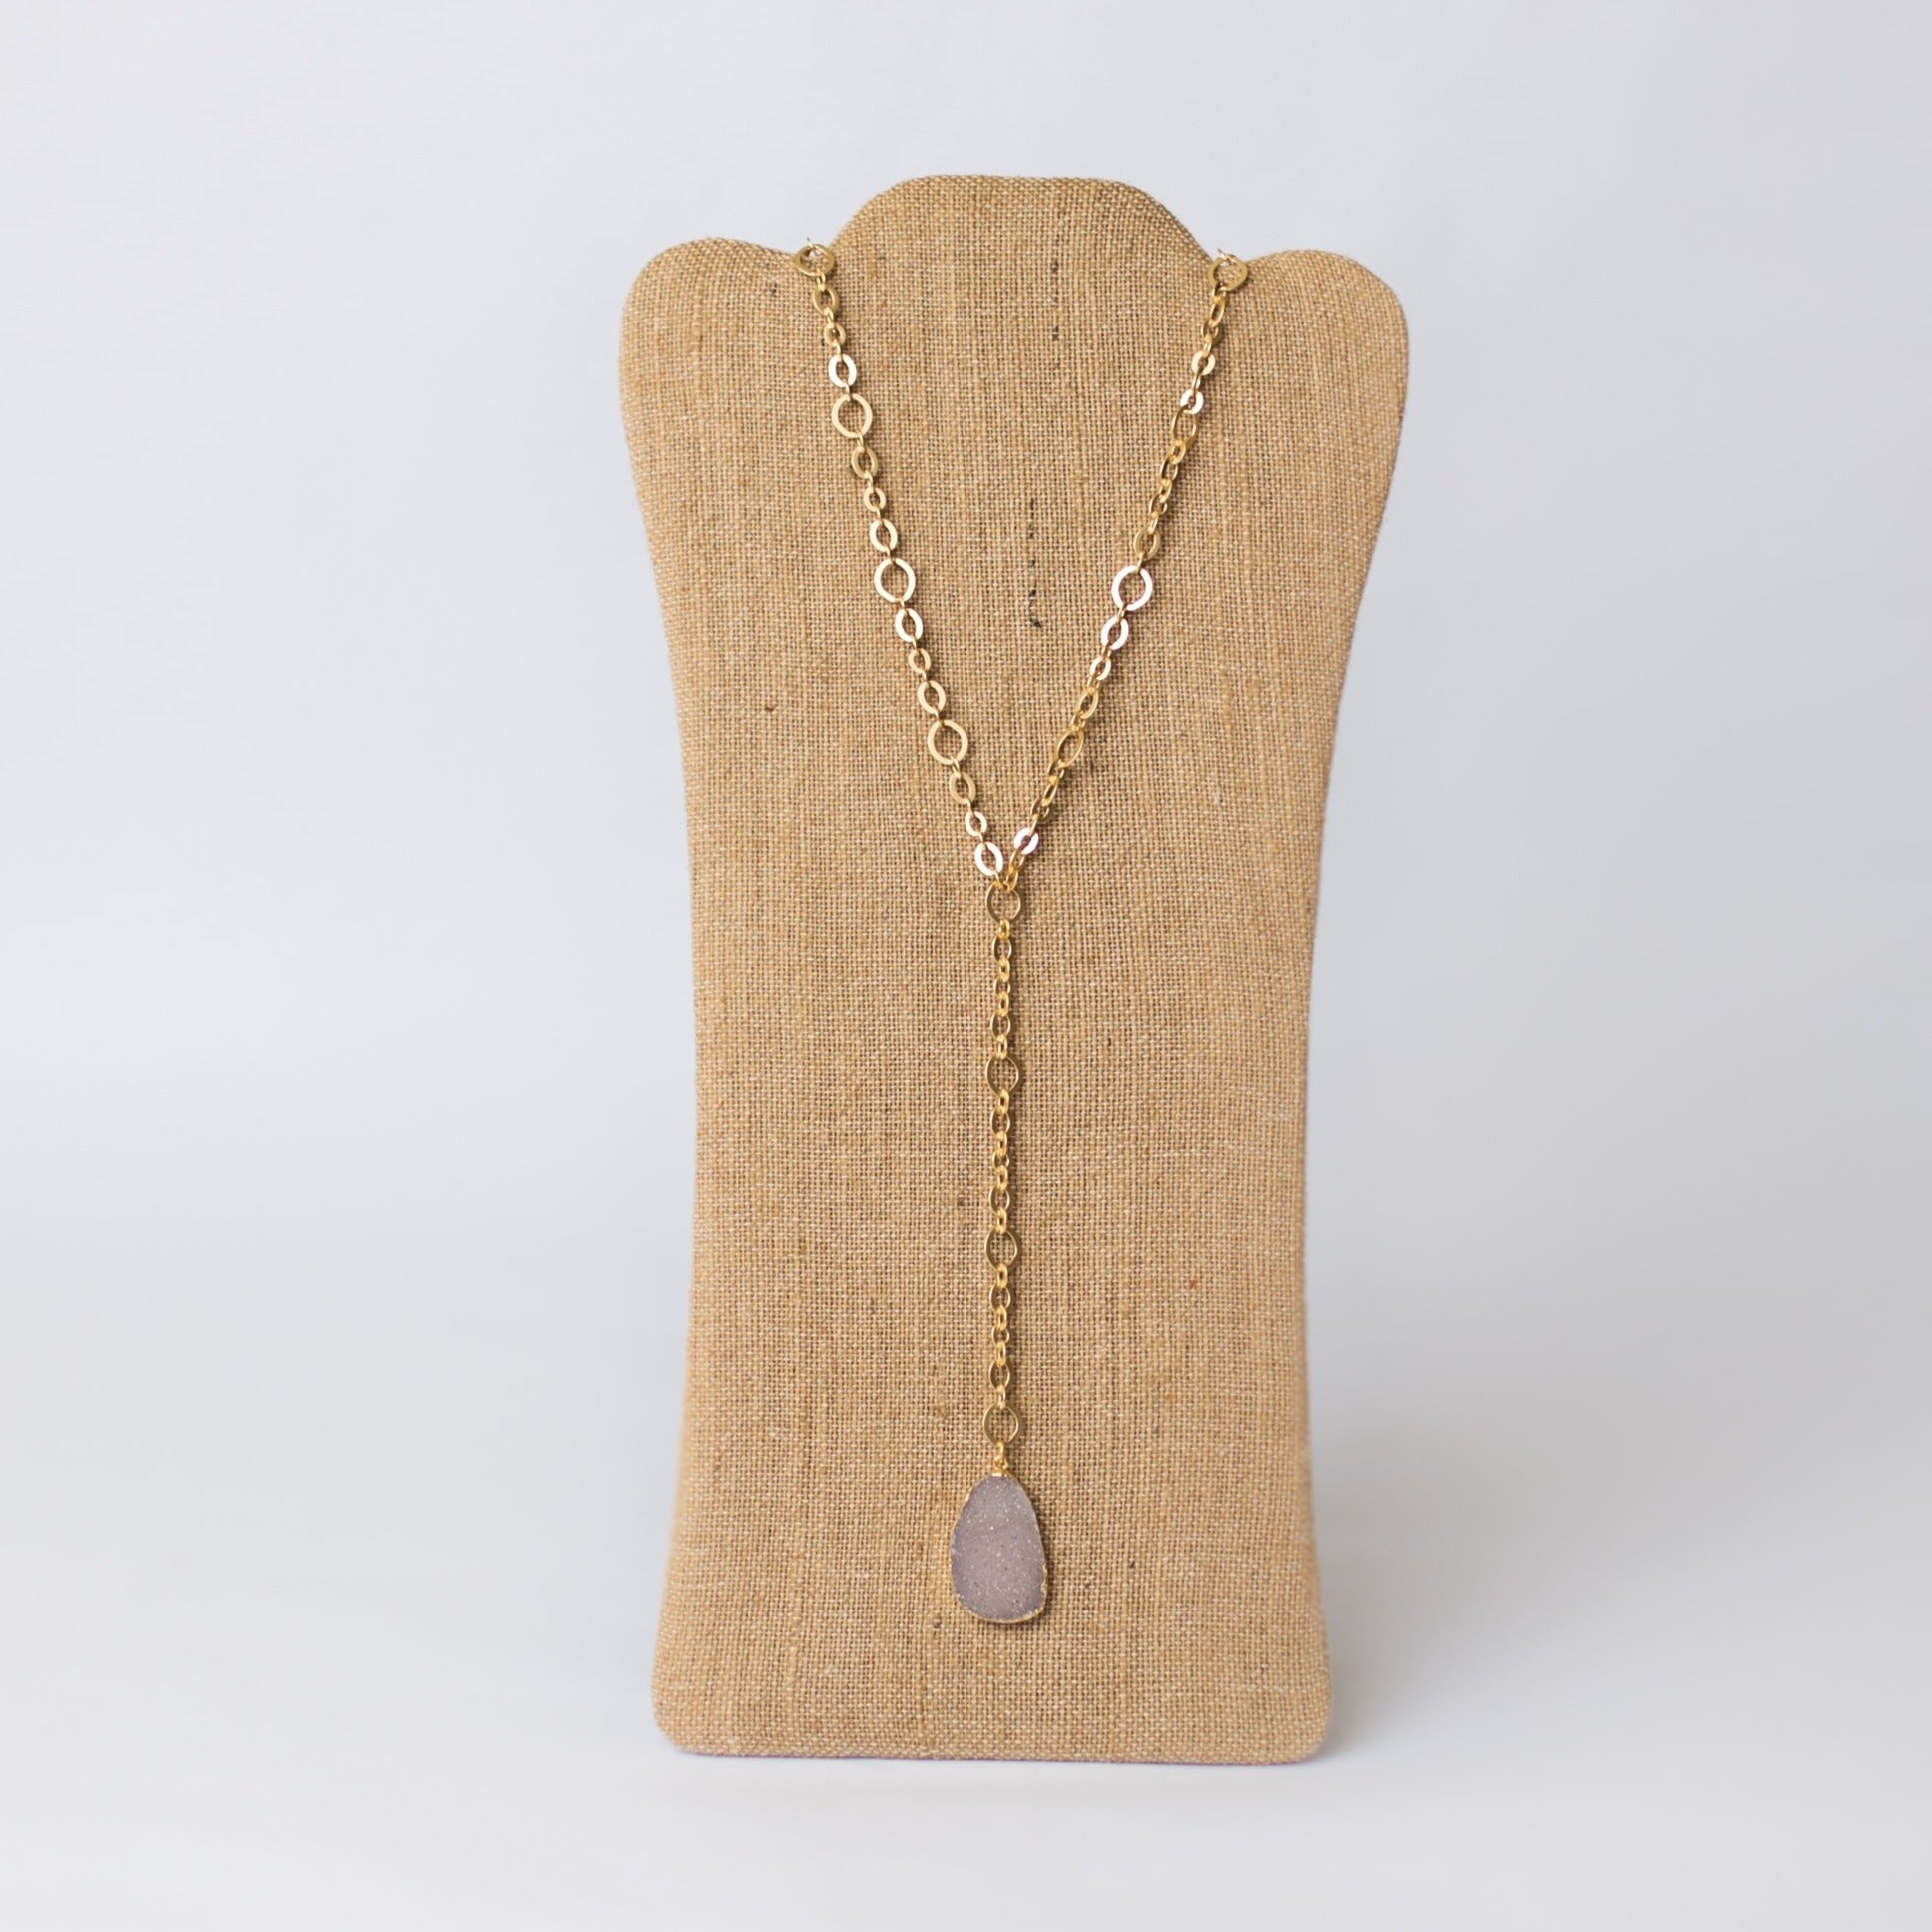 Y Necklace with Druzy Pendant - Swara Jewelry